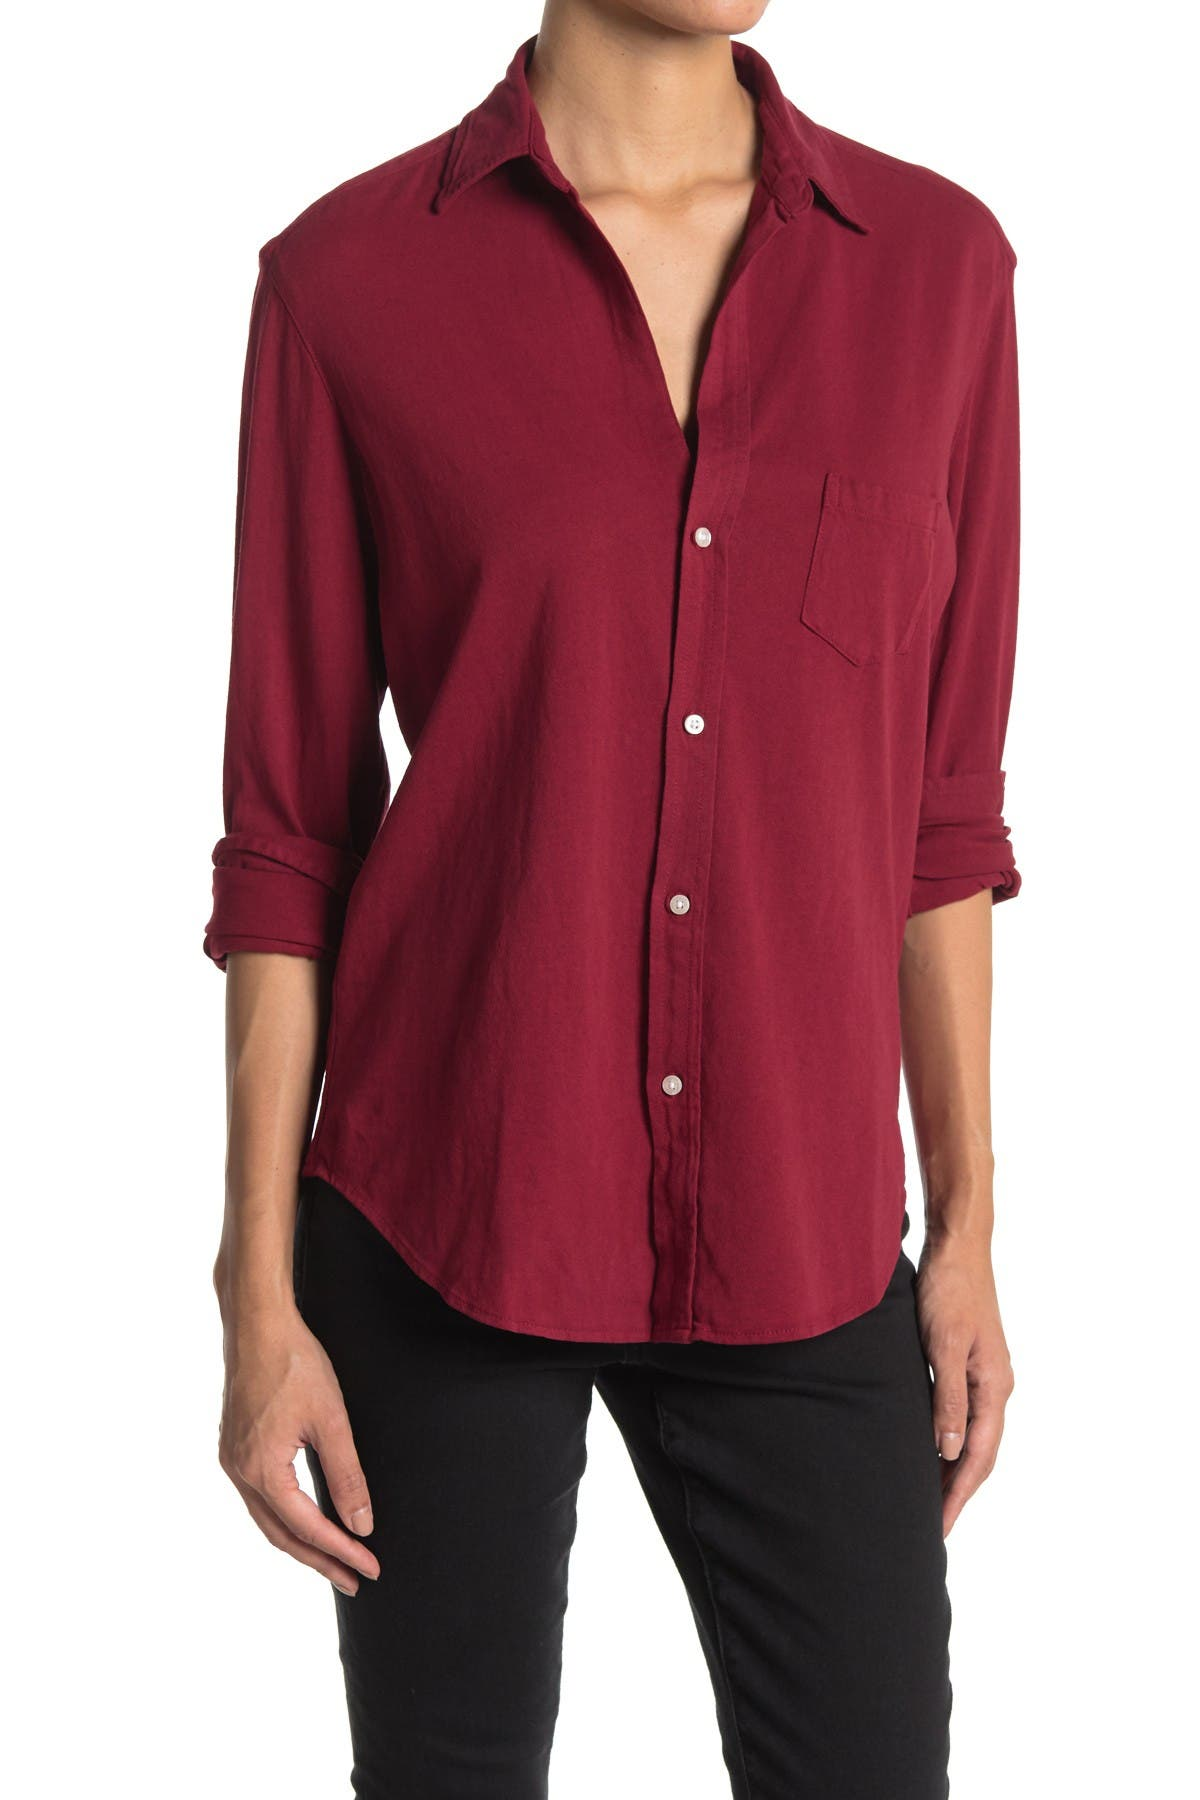 Image of FRANK & EILEEN Eileen Fit Solid Knit Shirt